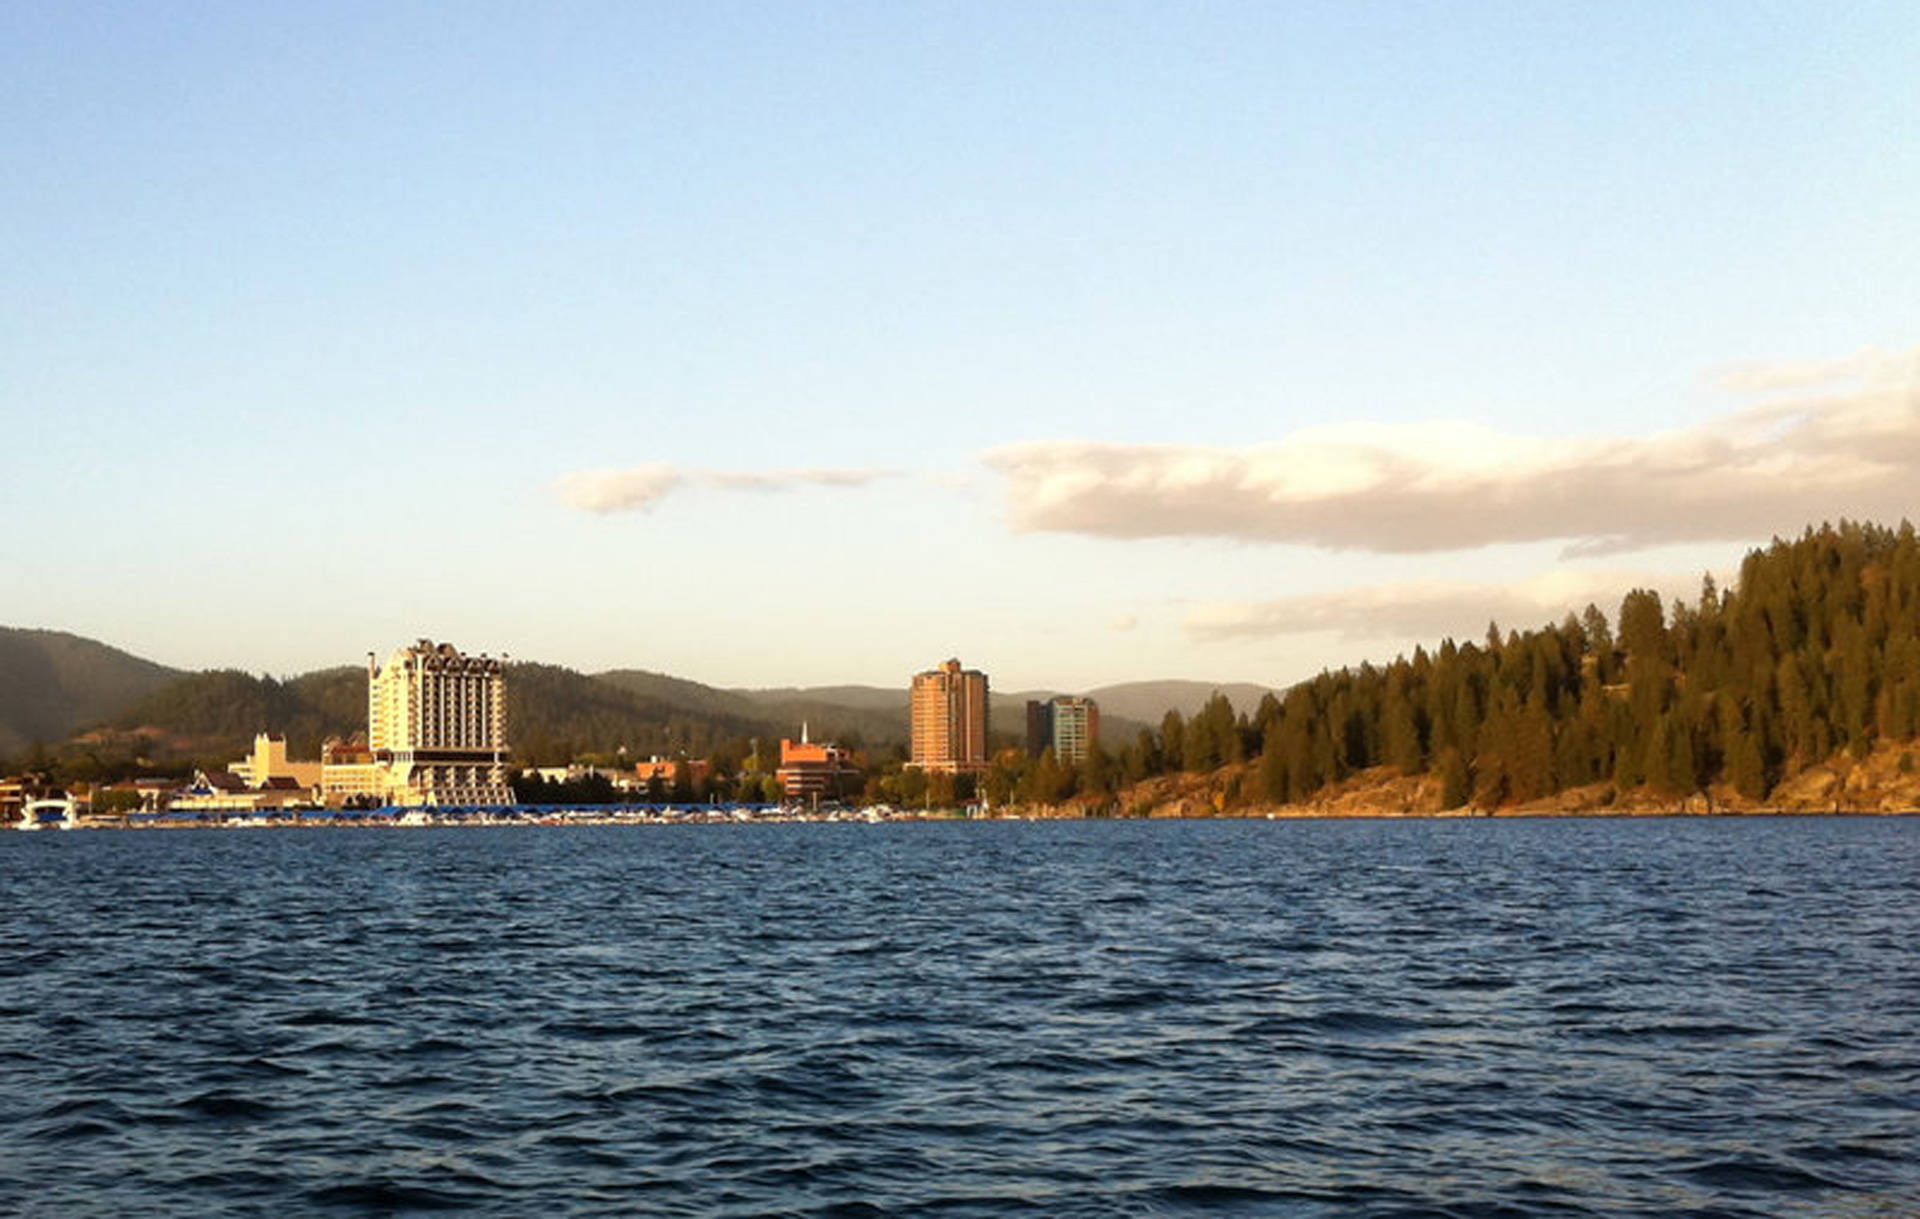 Coeur d'Alene is the largest city and county seat of Kootenai County, Idaho. North Idaho counties like Kootenai have seen their population double since the 1990s. Karen Ybanez/Flickr